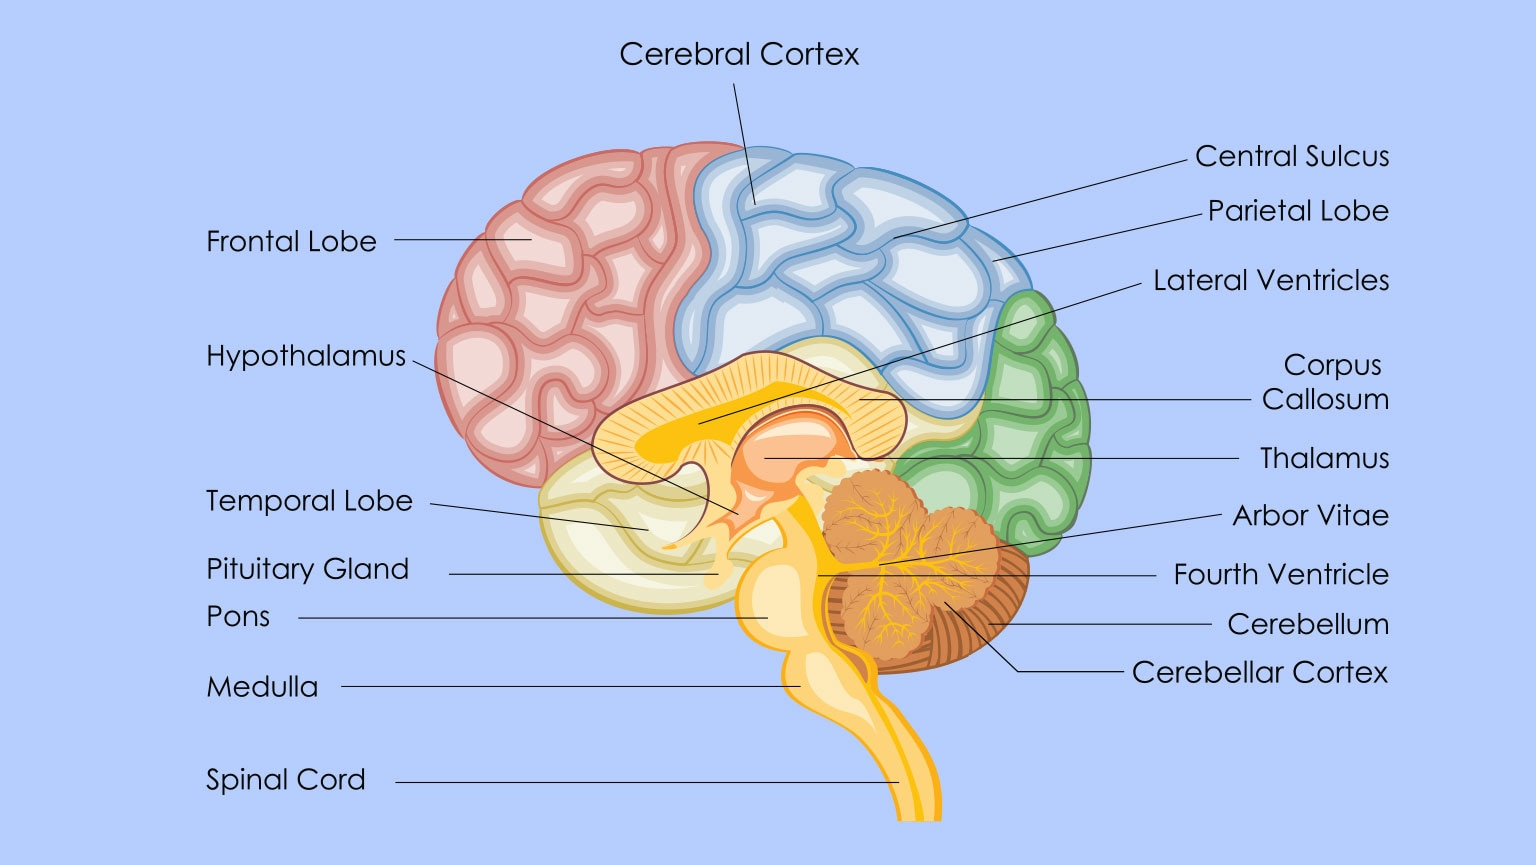 Damaged Brain, Damaged Function | The Great Courses Plus